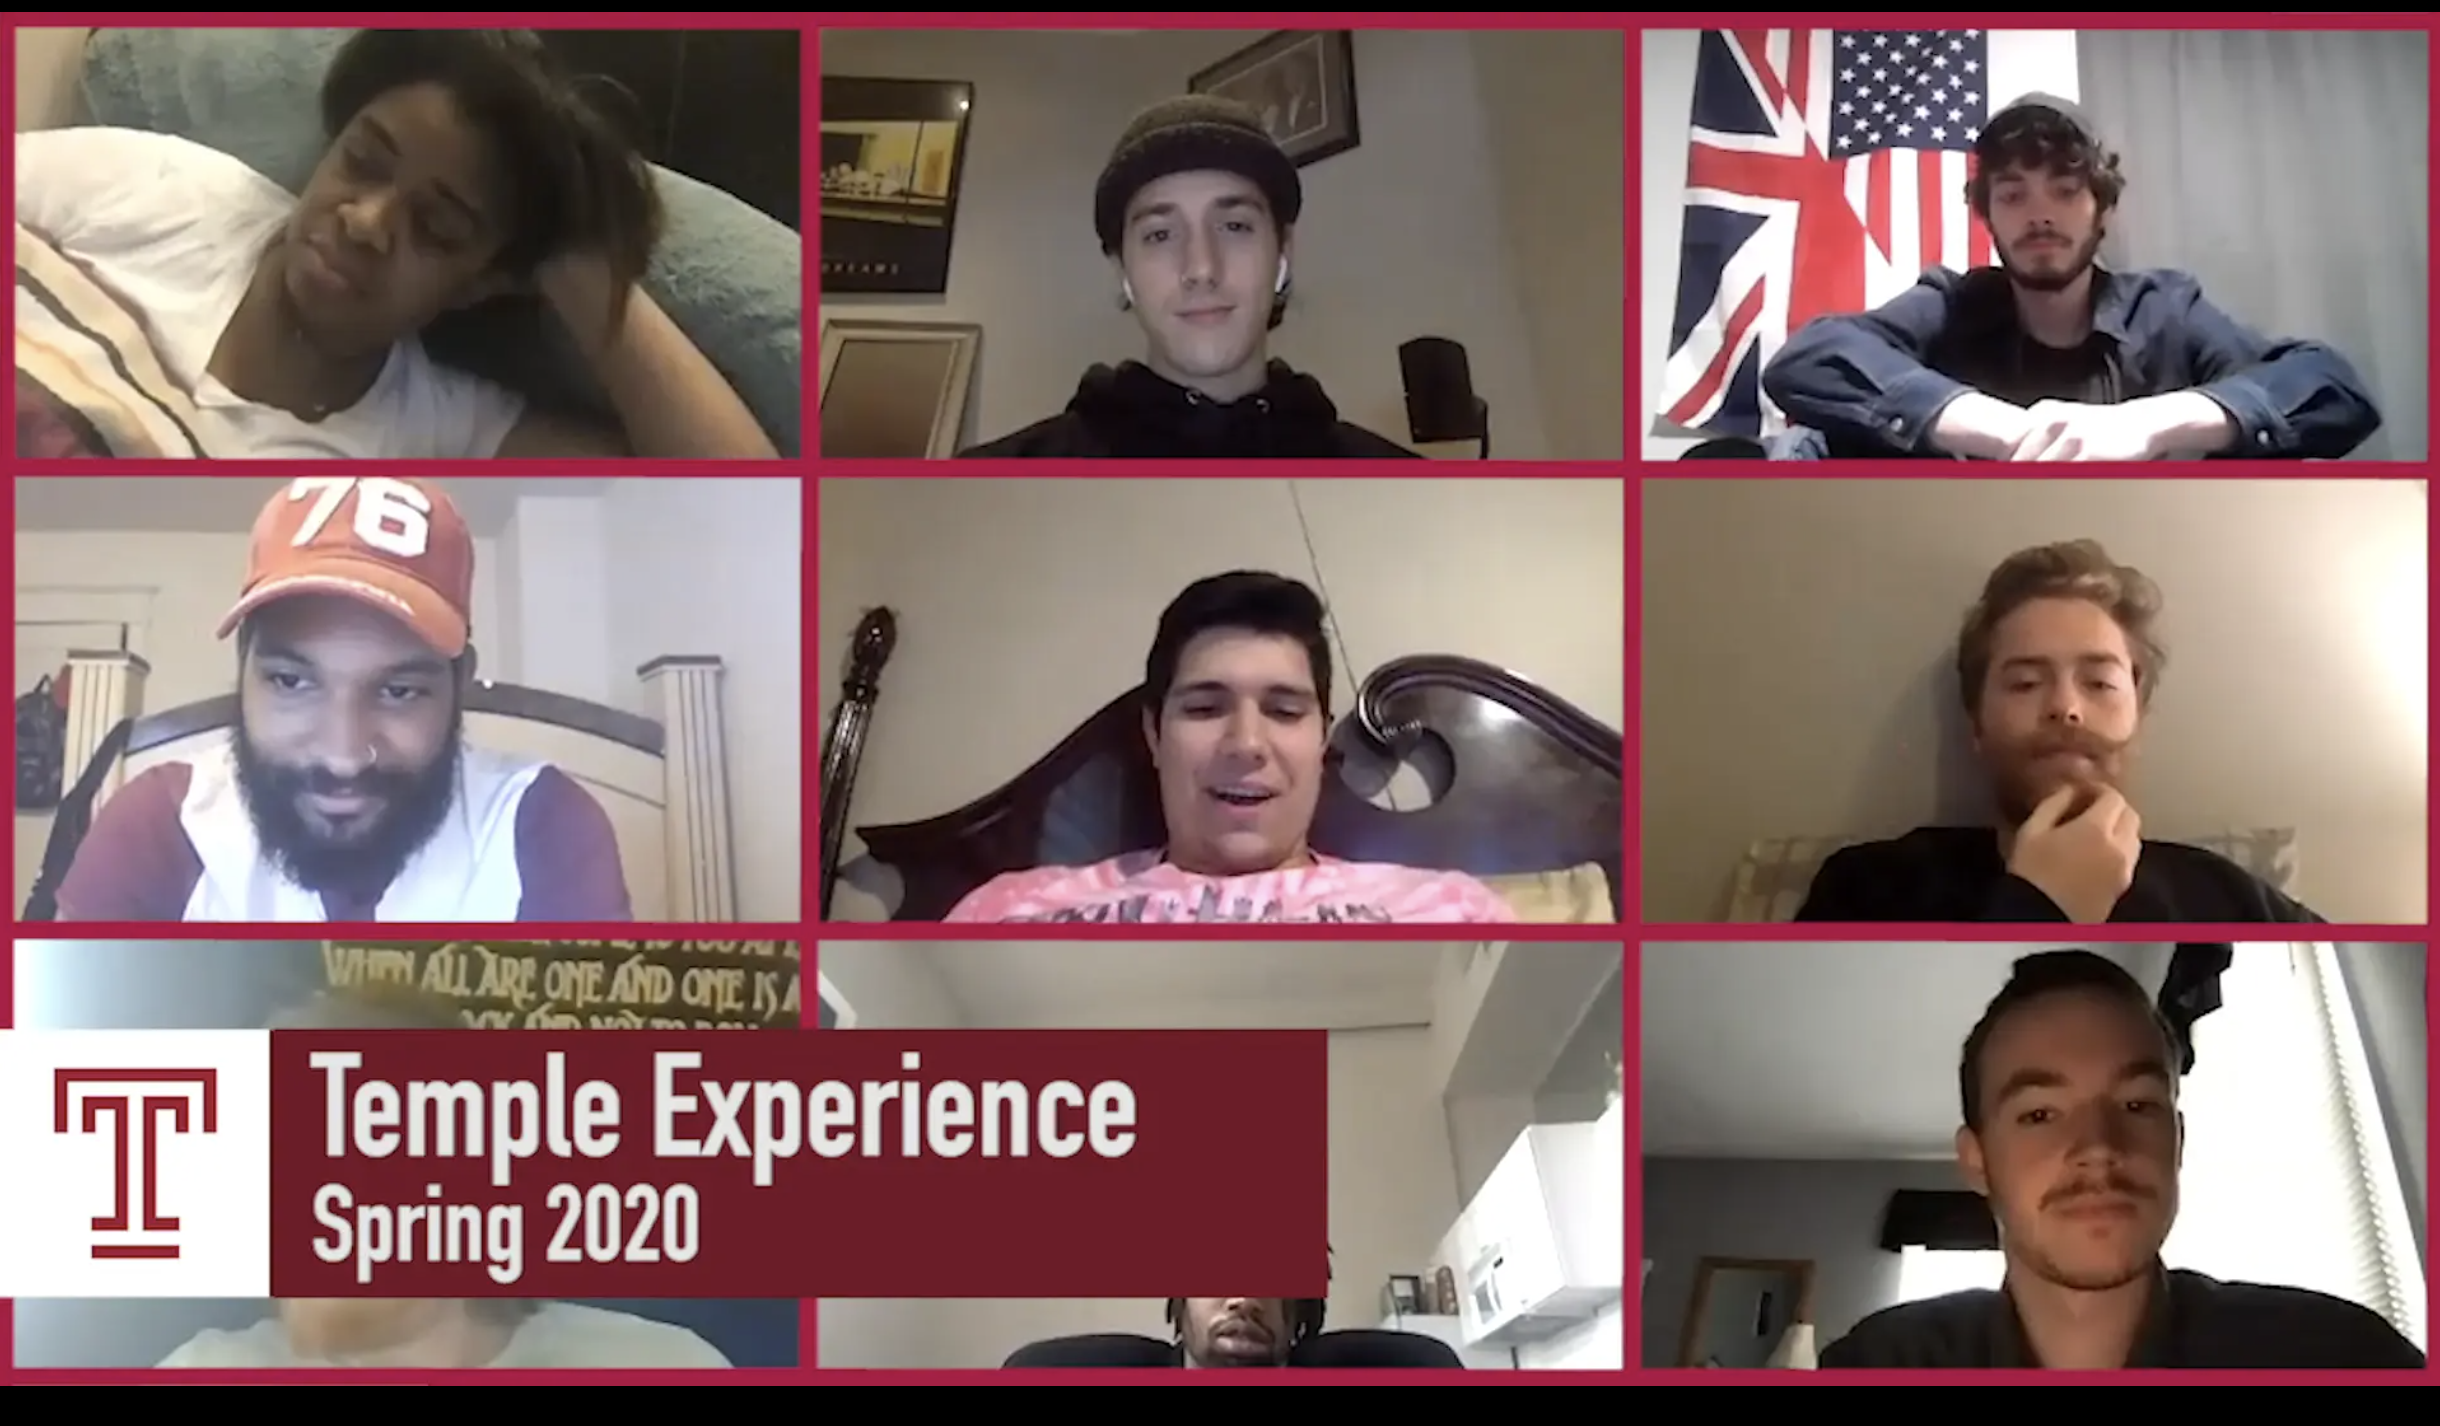 Temple Experience: Spring 2020